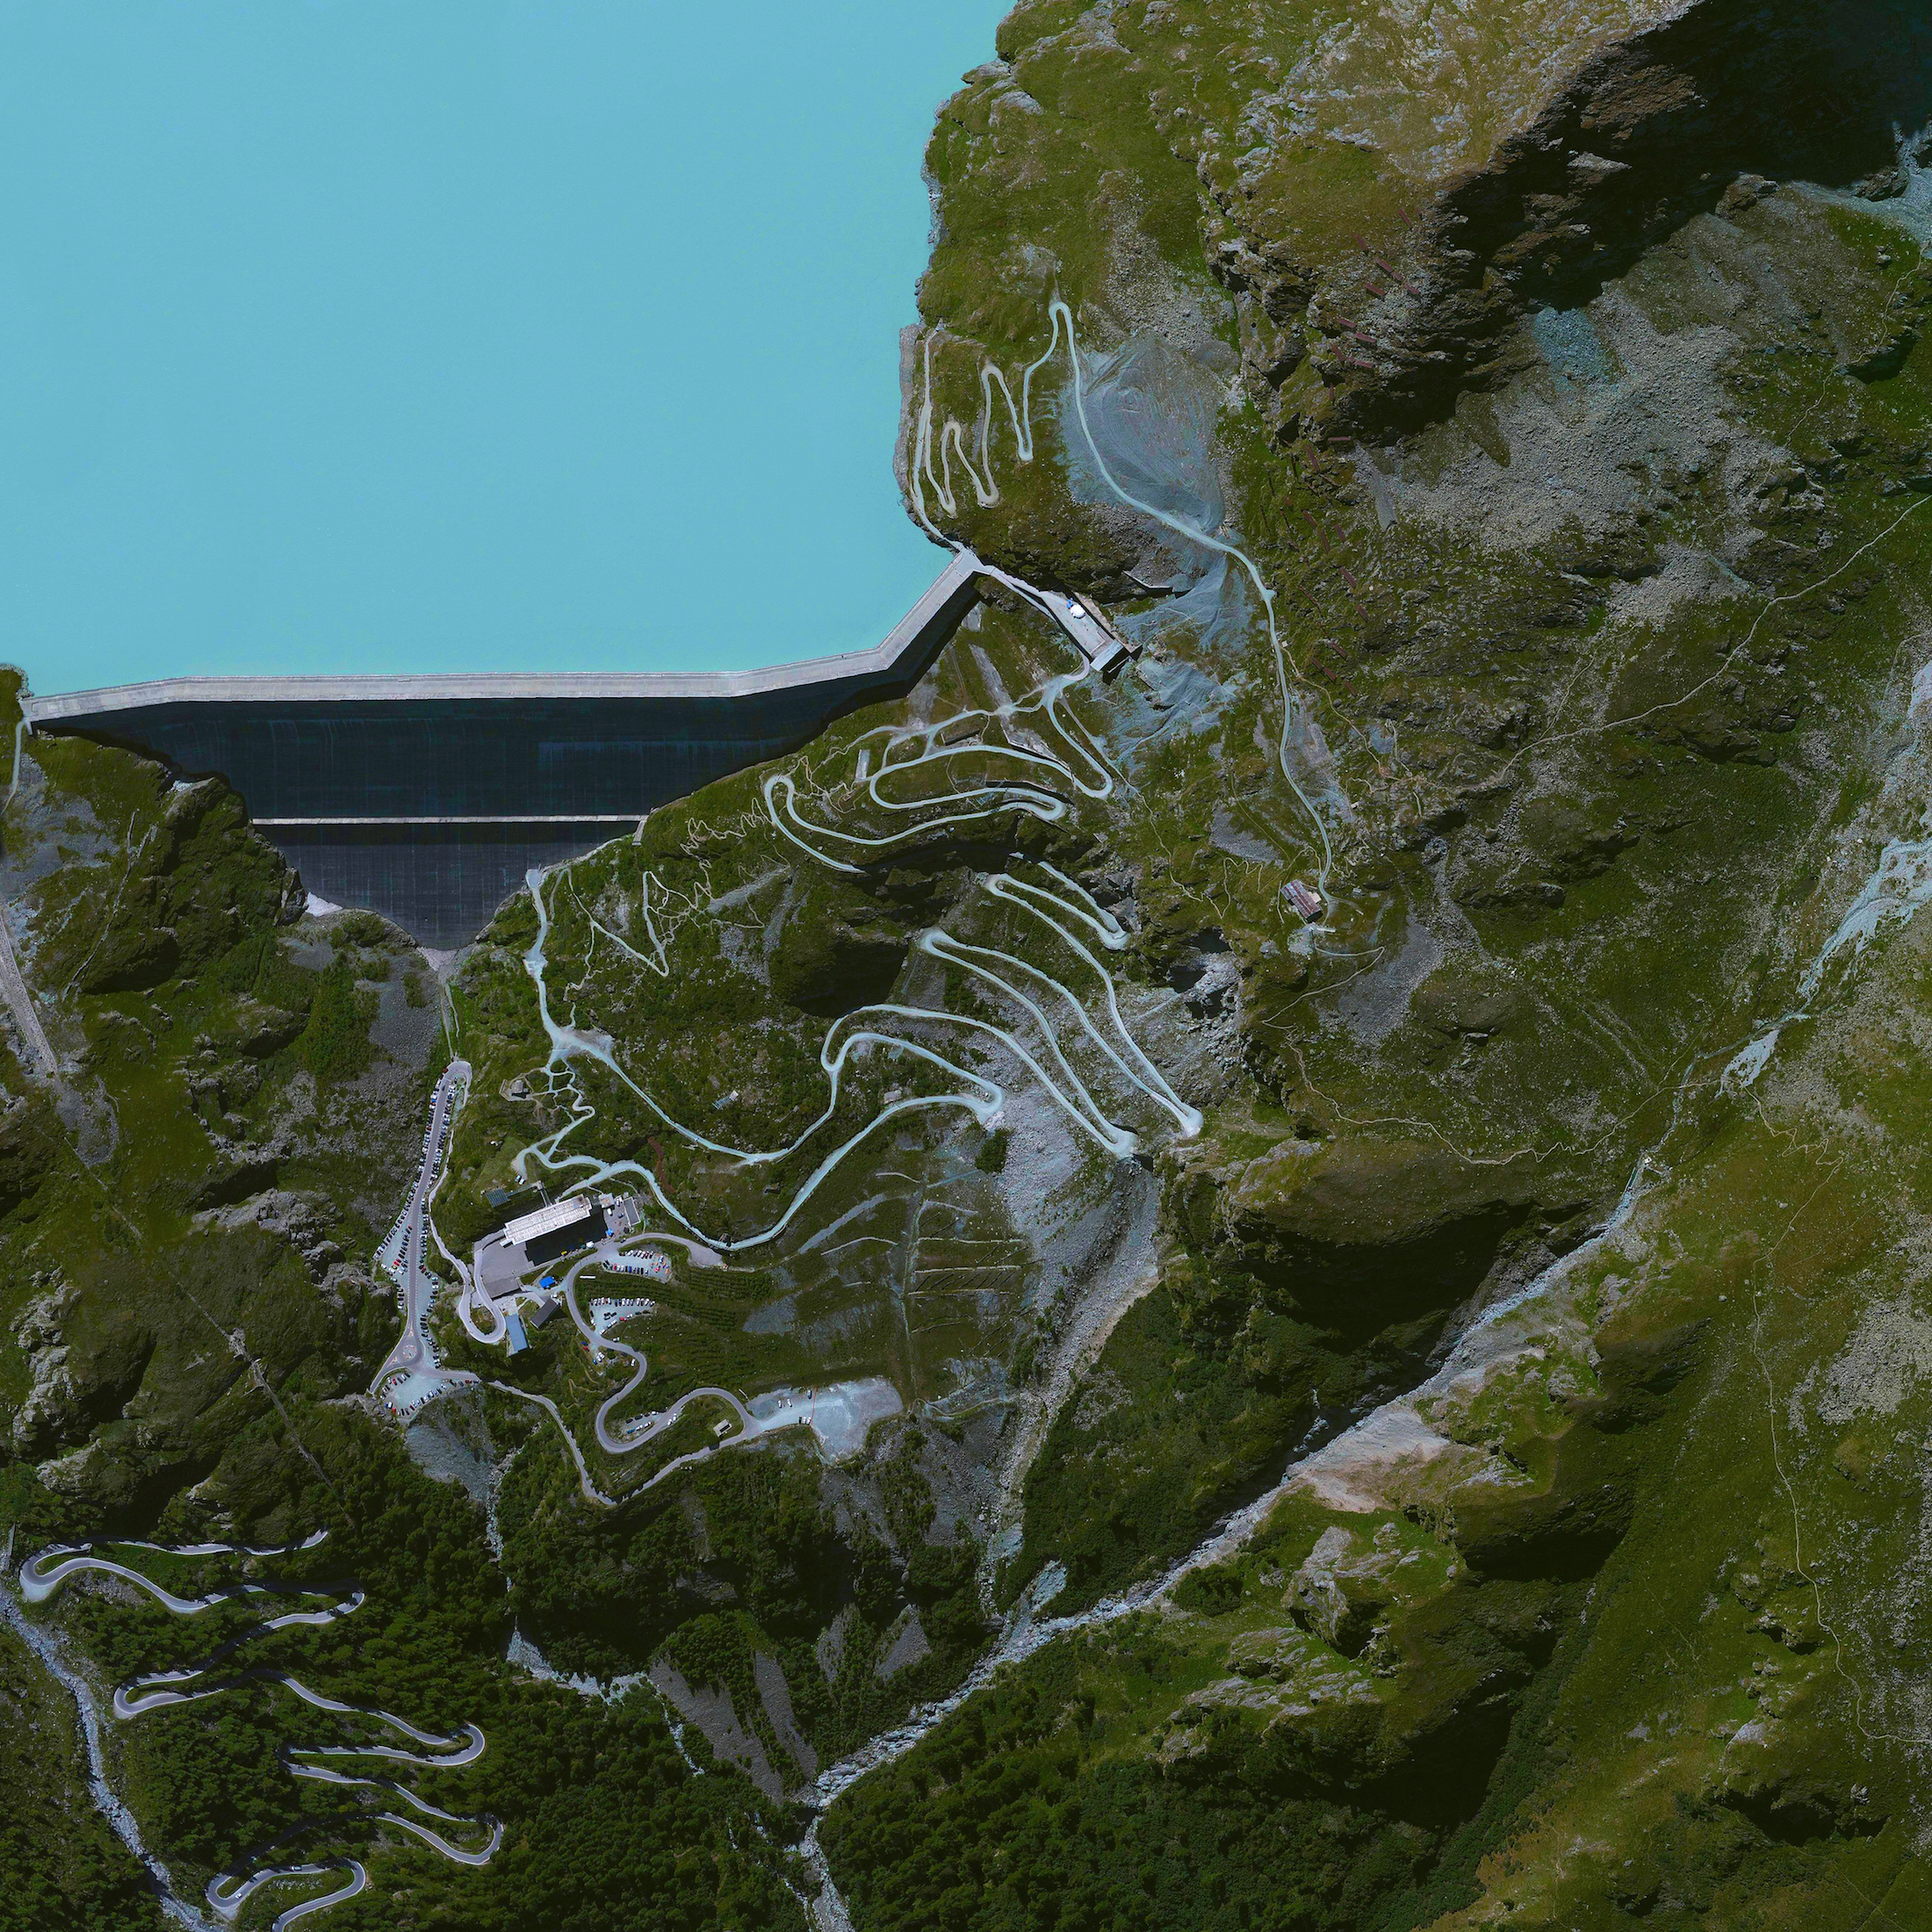 1/6/2016   Grande Dixence Dam   Hérémence, Switzerland  46°04′50″N 07°24′14″E    The Grande Dixence Dam in the canton of Valais in Switzerland is the tallest gravity dam in the world with a height of 935 feet (285 m). A gravity dam resists the horizontal thrust of the contained water, in this case the Dixence River, entirely by its own weight. The Grand Dixence took 14 years to construct, contains approximately six million cubic meters of concrete, and generates power for more than 400,000 Swiss homes.